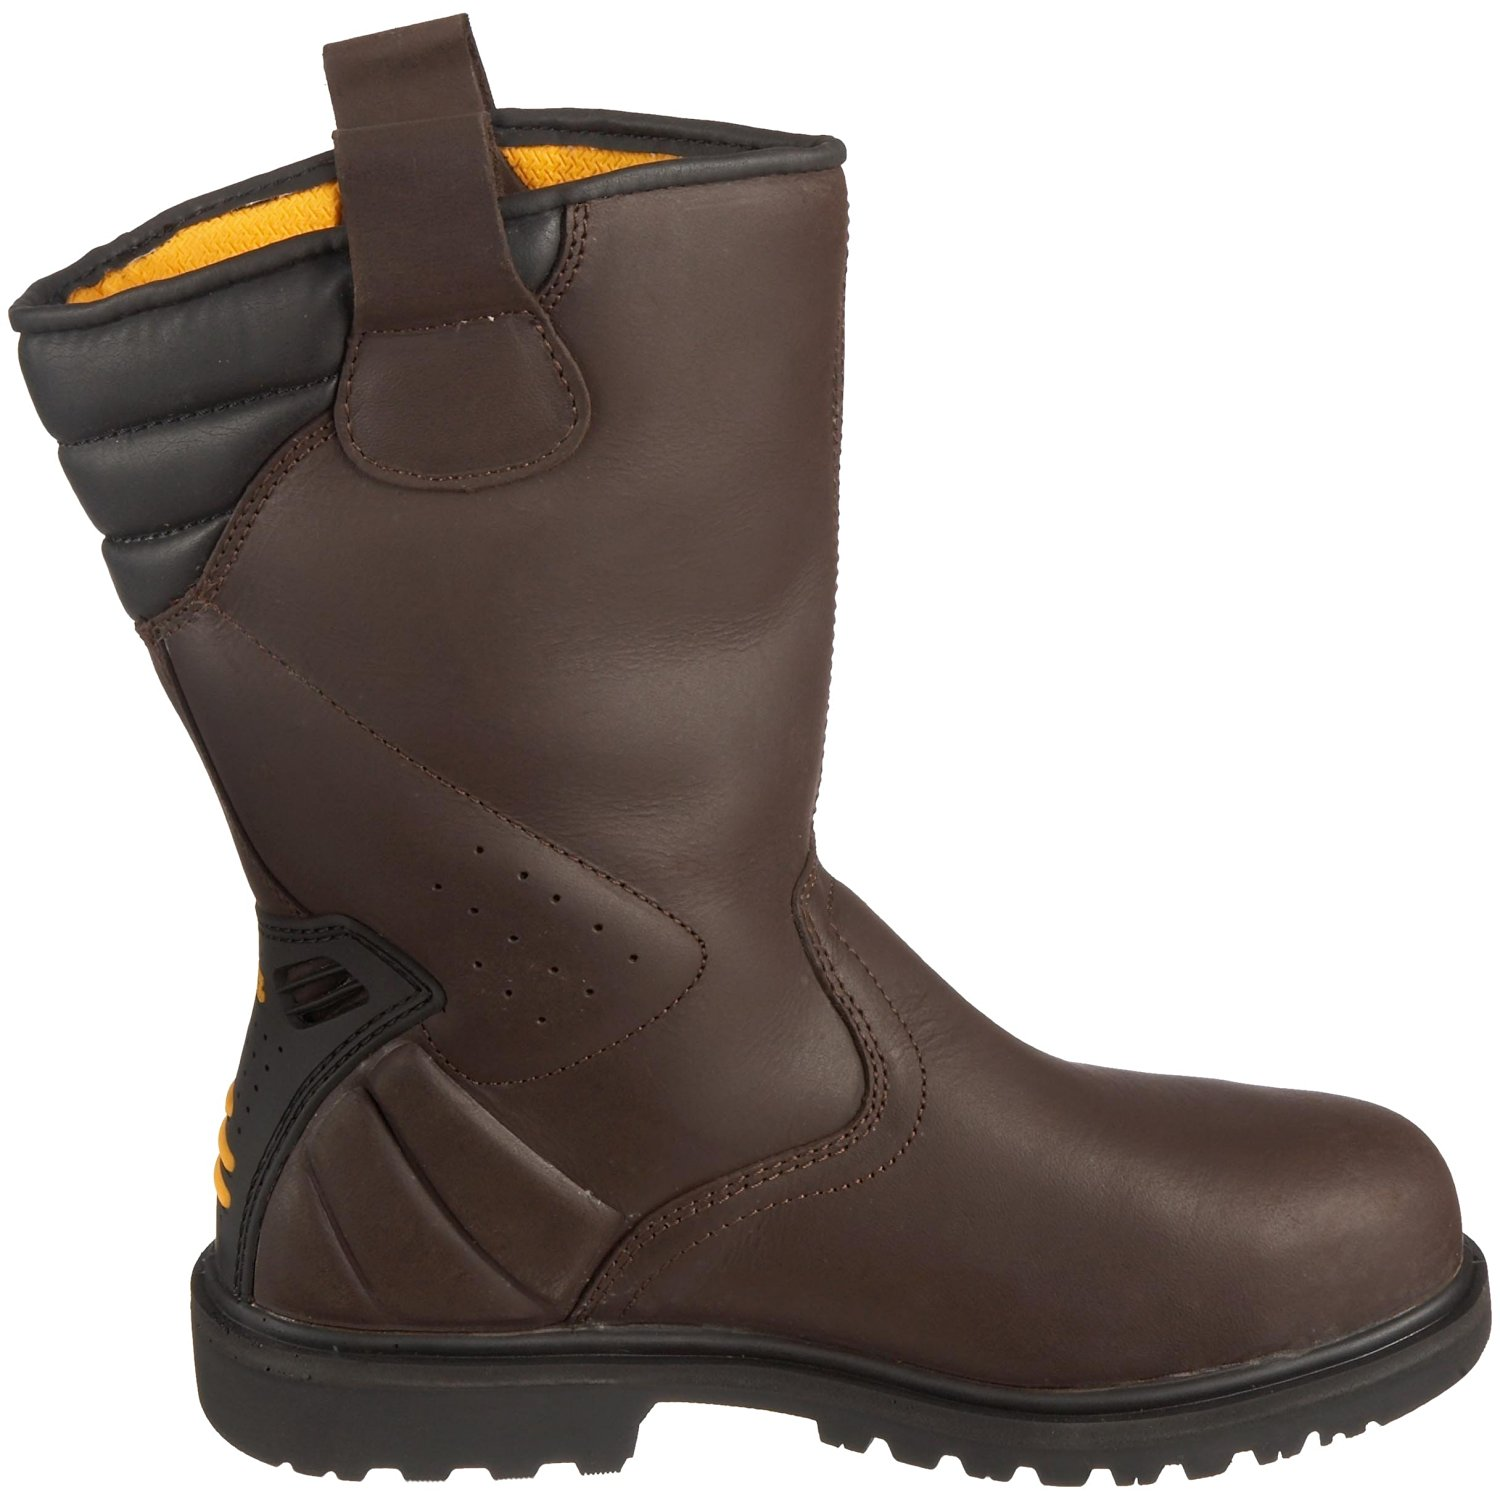 Dewalt 10 in Rigger workboot Safety Shoes in Dubai,UAE - RIGGER from AABTools